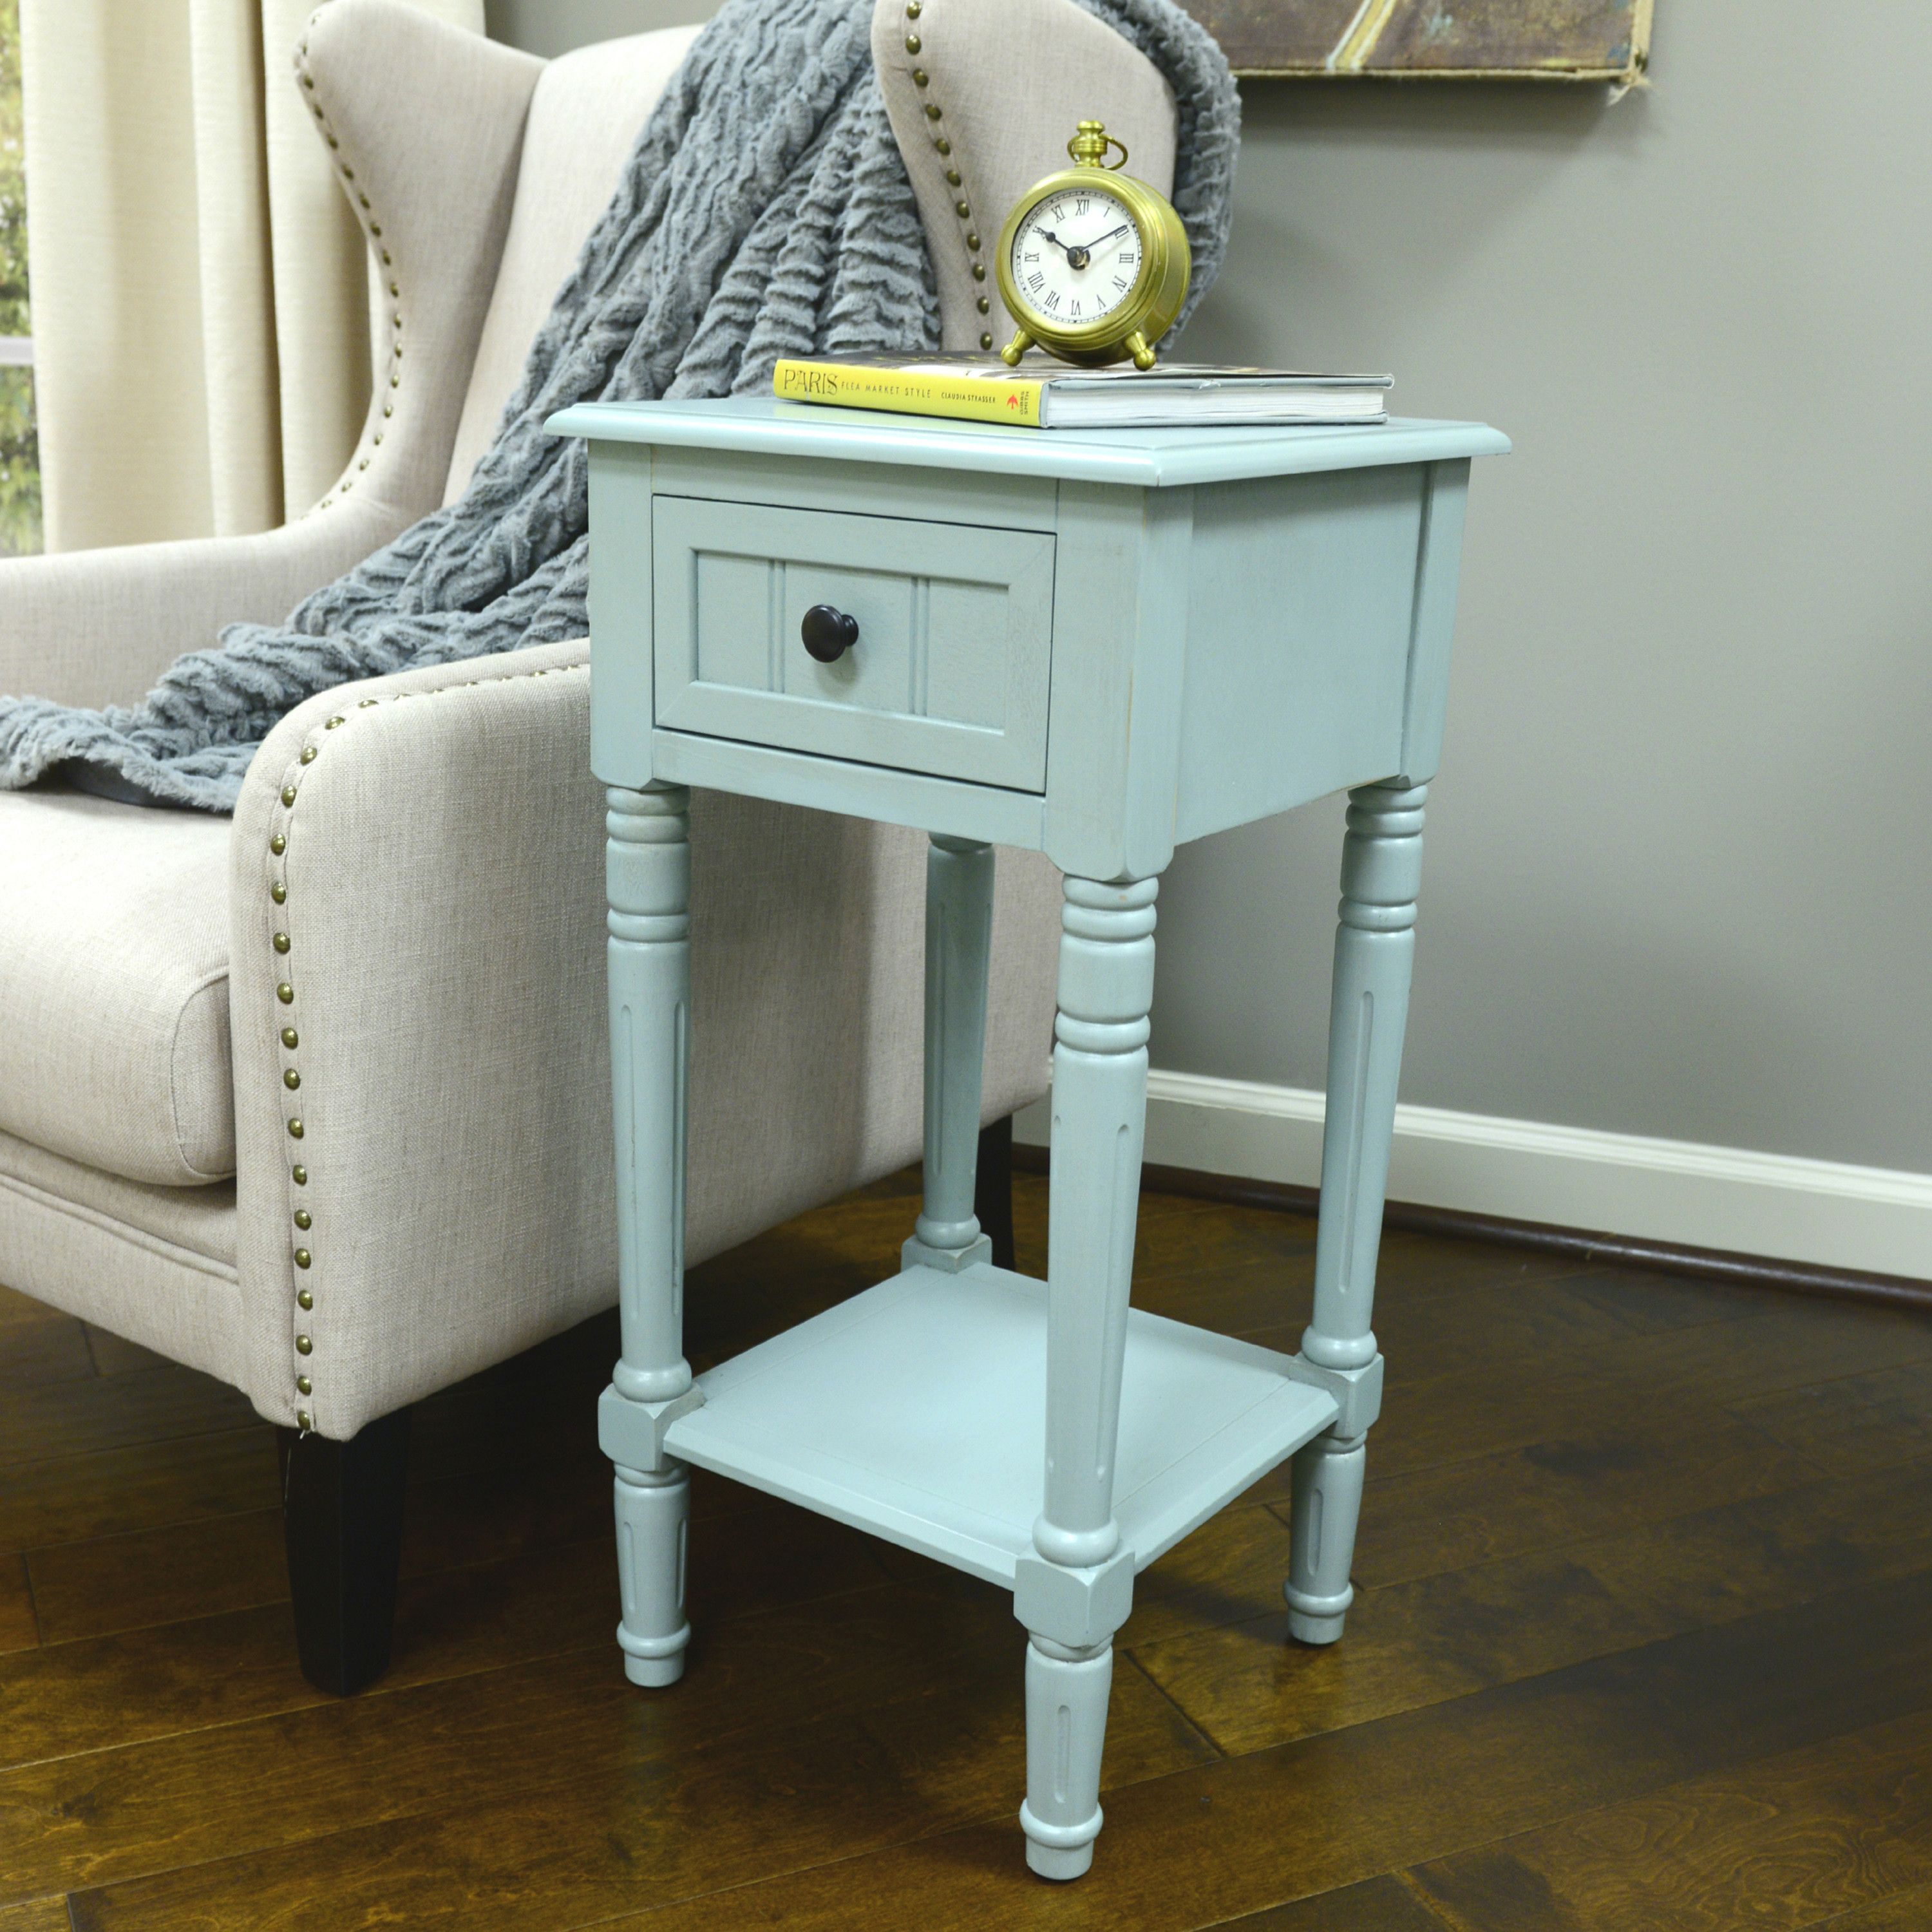 Andover Mills Everly 1 Drawer End Table | Home Decor | Pinterest ...